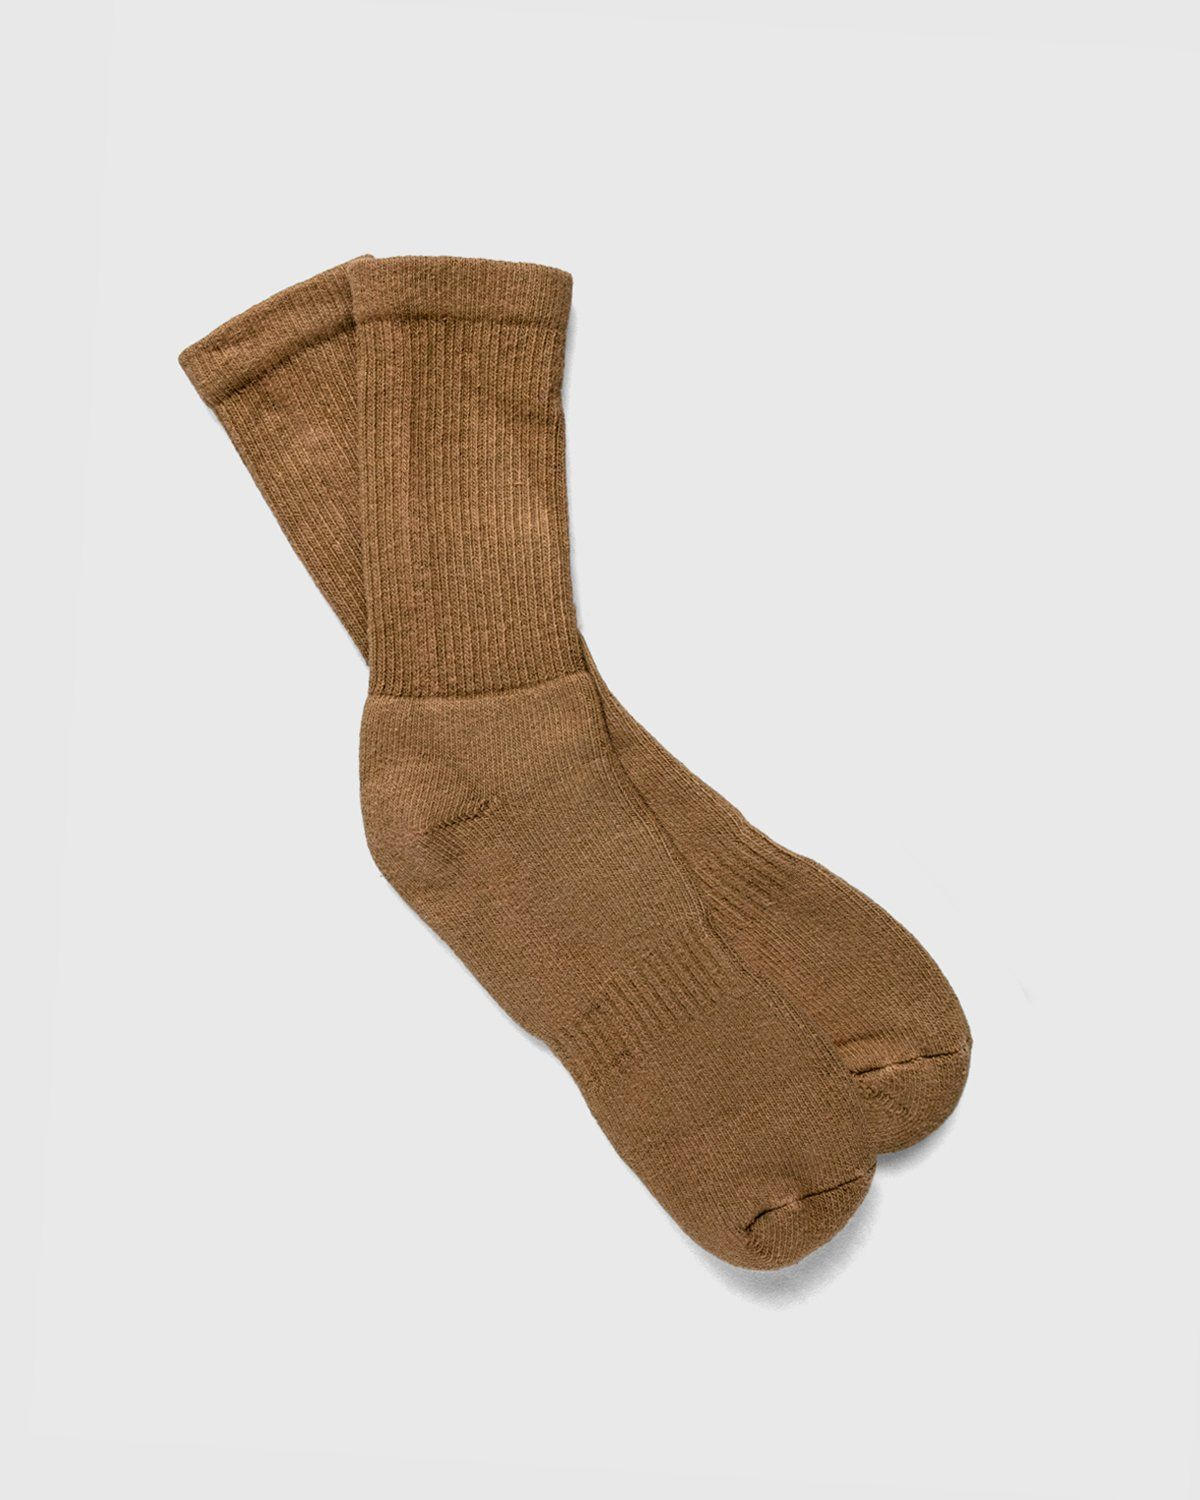 Darryl Brown — Sock Set Multicolour - Image 2